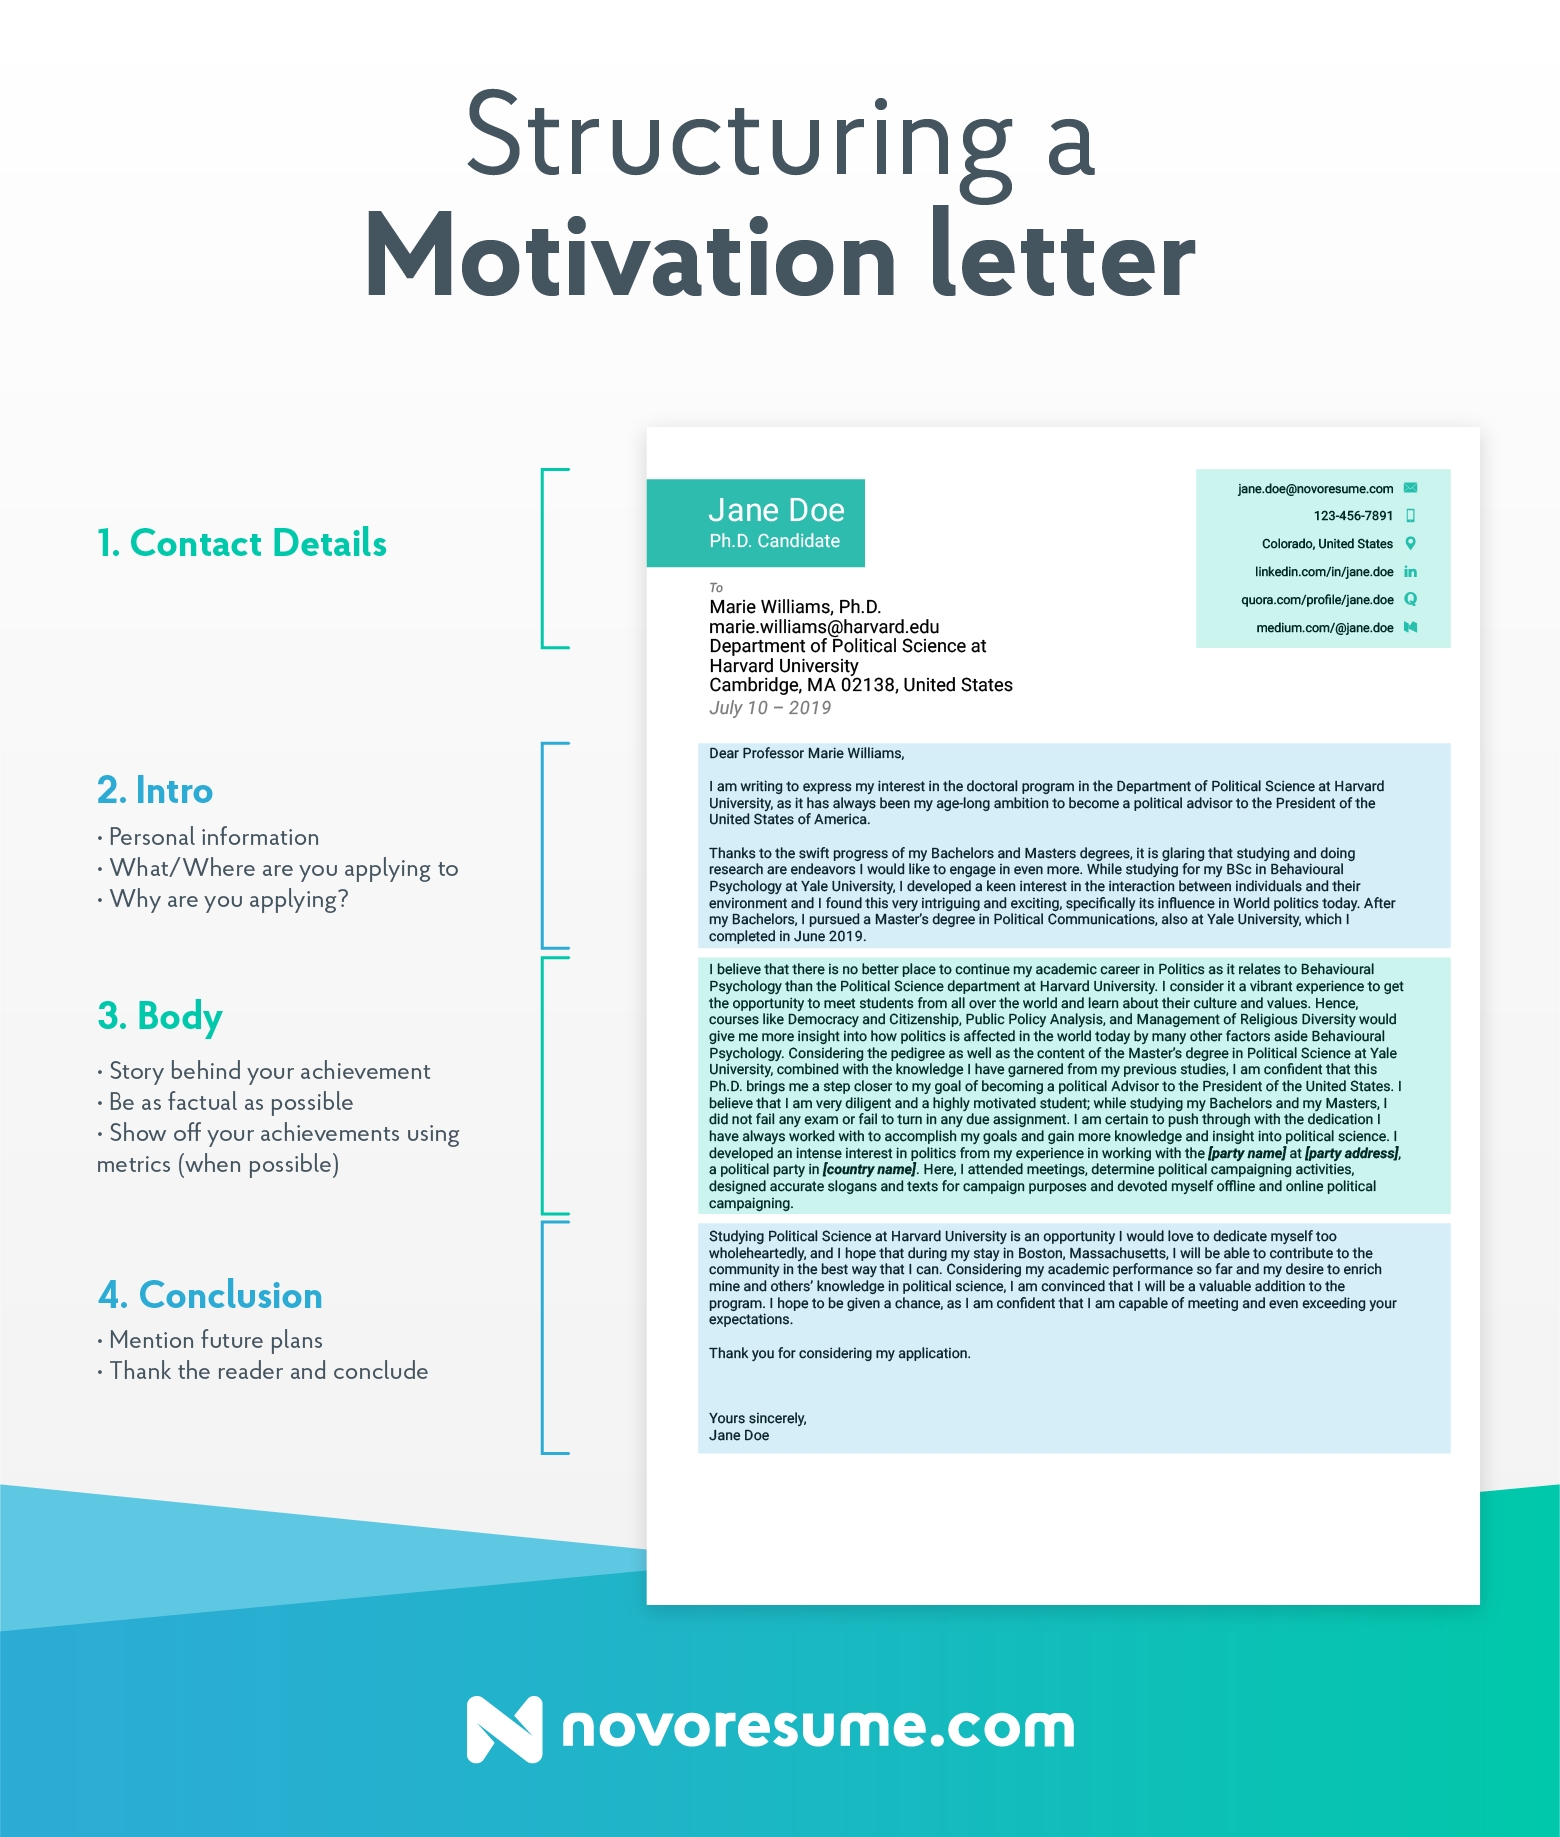 How to Write a Motivational Letter (and Get Accepted